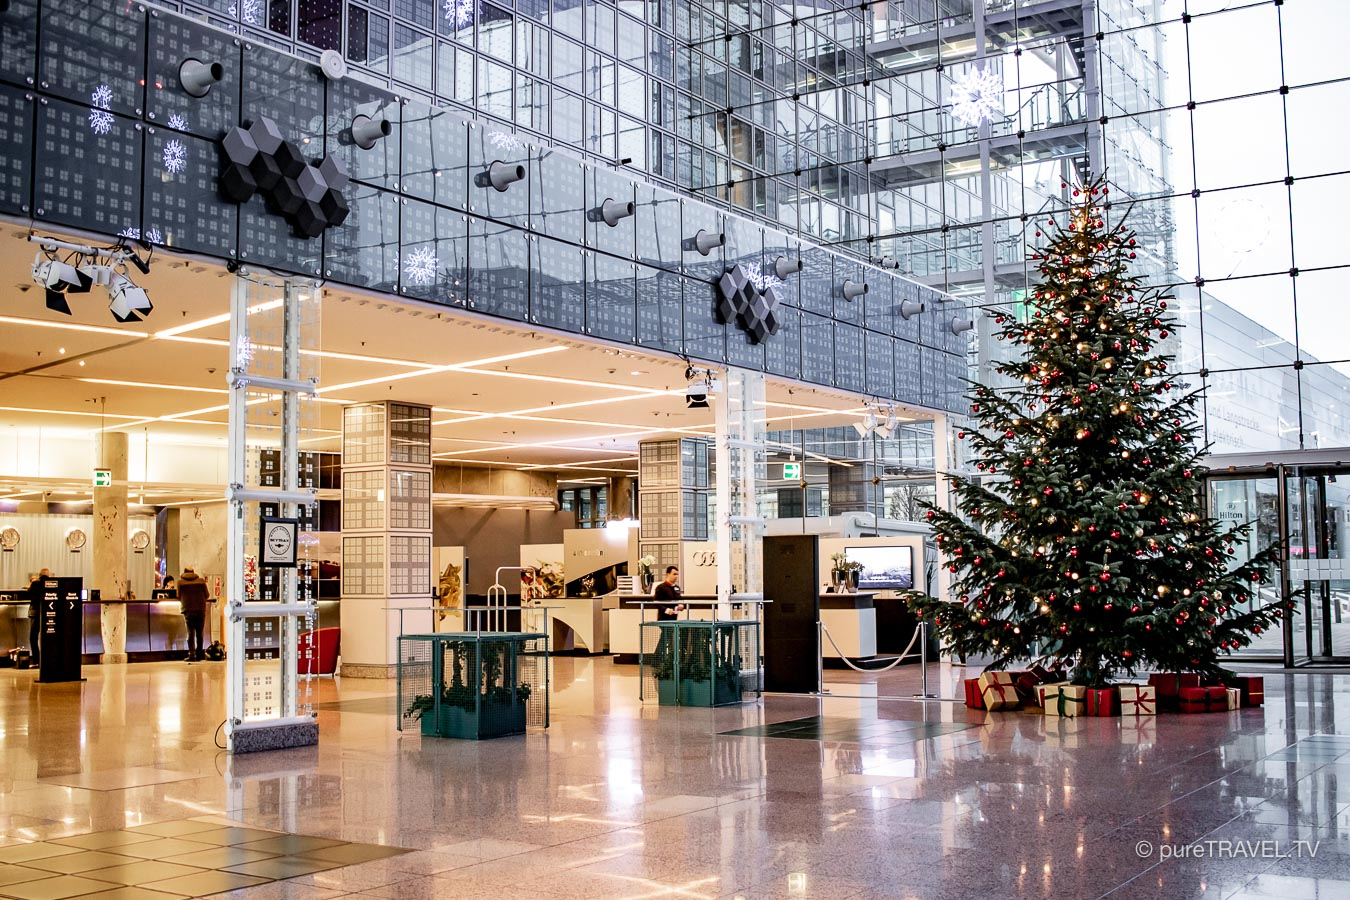 Airporthotel München - Hilton Munich Airport Hotel - Munich Terminals - Wintermarket and Christmas market - Buffet and new rooms